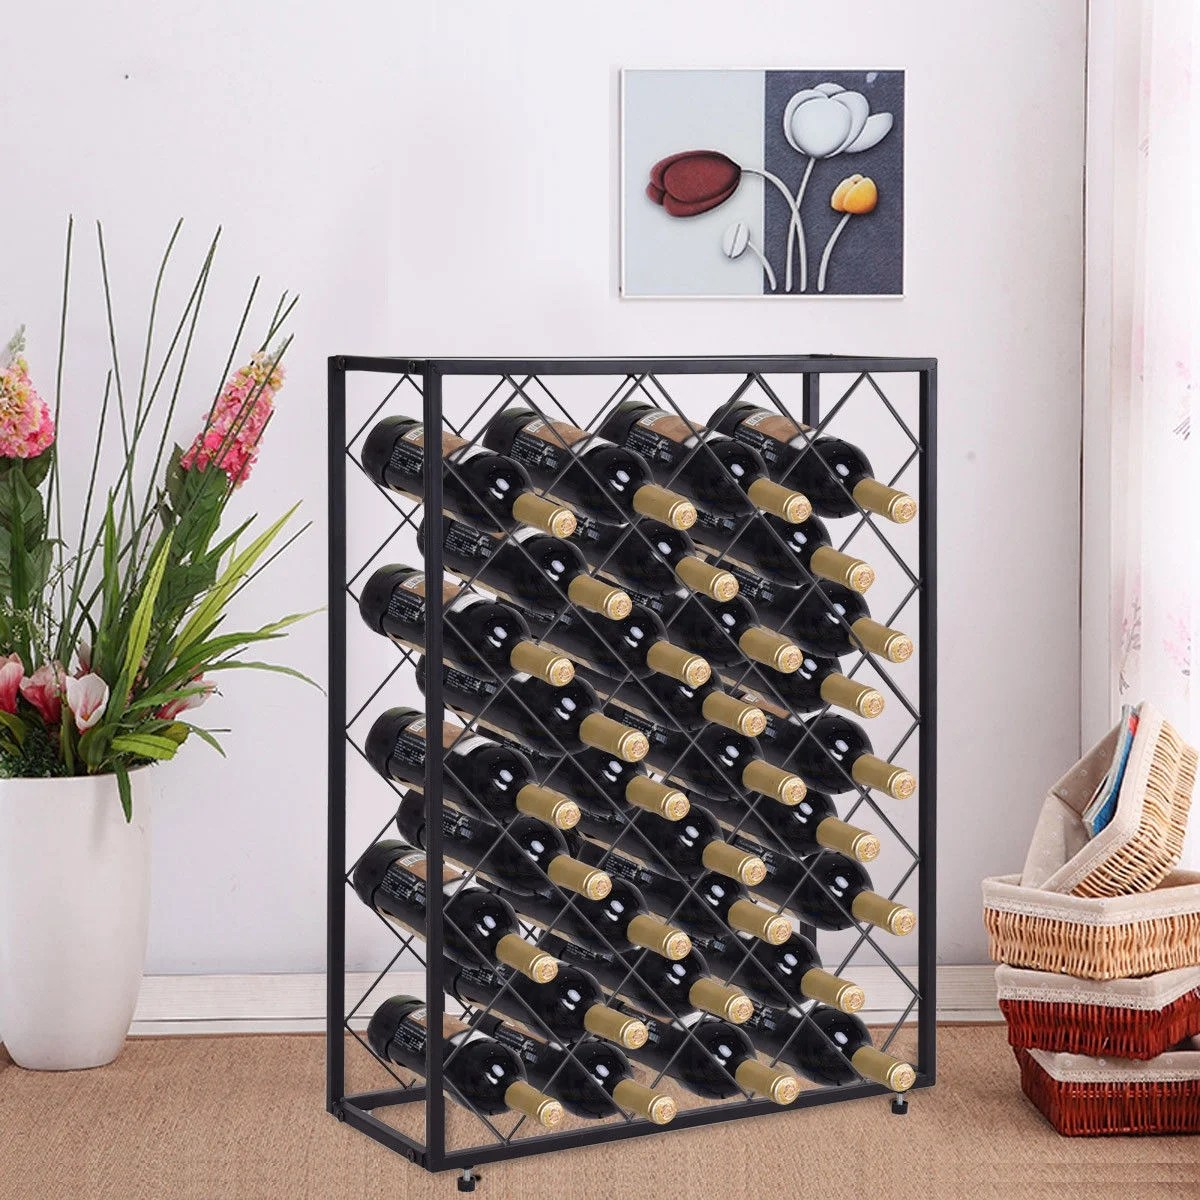 Metal Wine Storage Racks Gymax 32 Bottle Wine Rack Metal Storage Display Liquor Cabinet W Glass Table Top